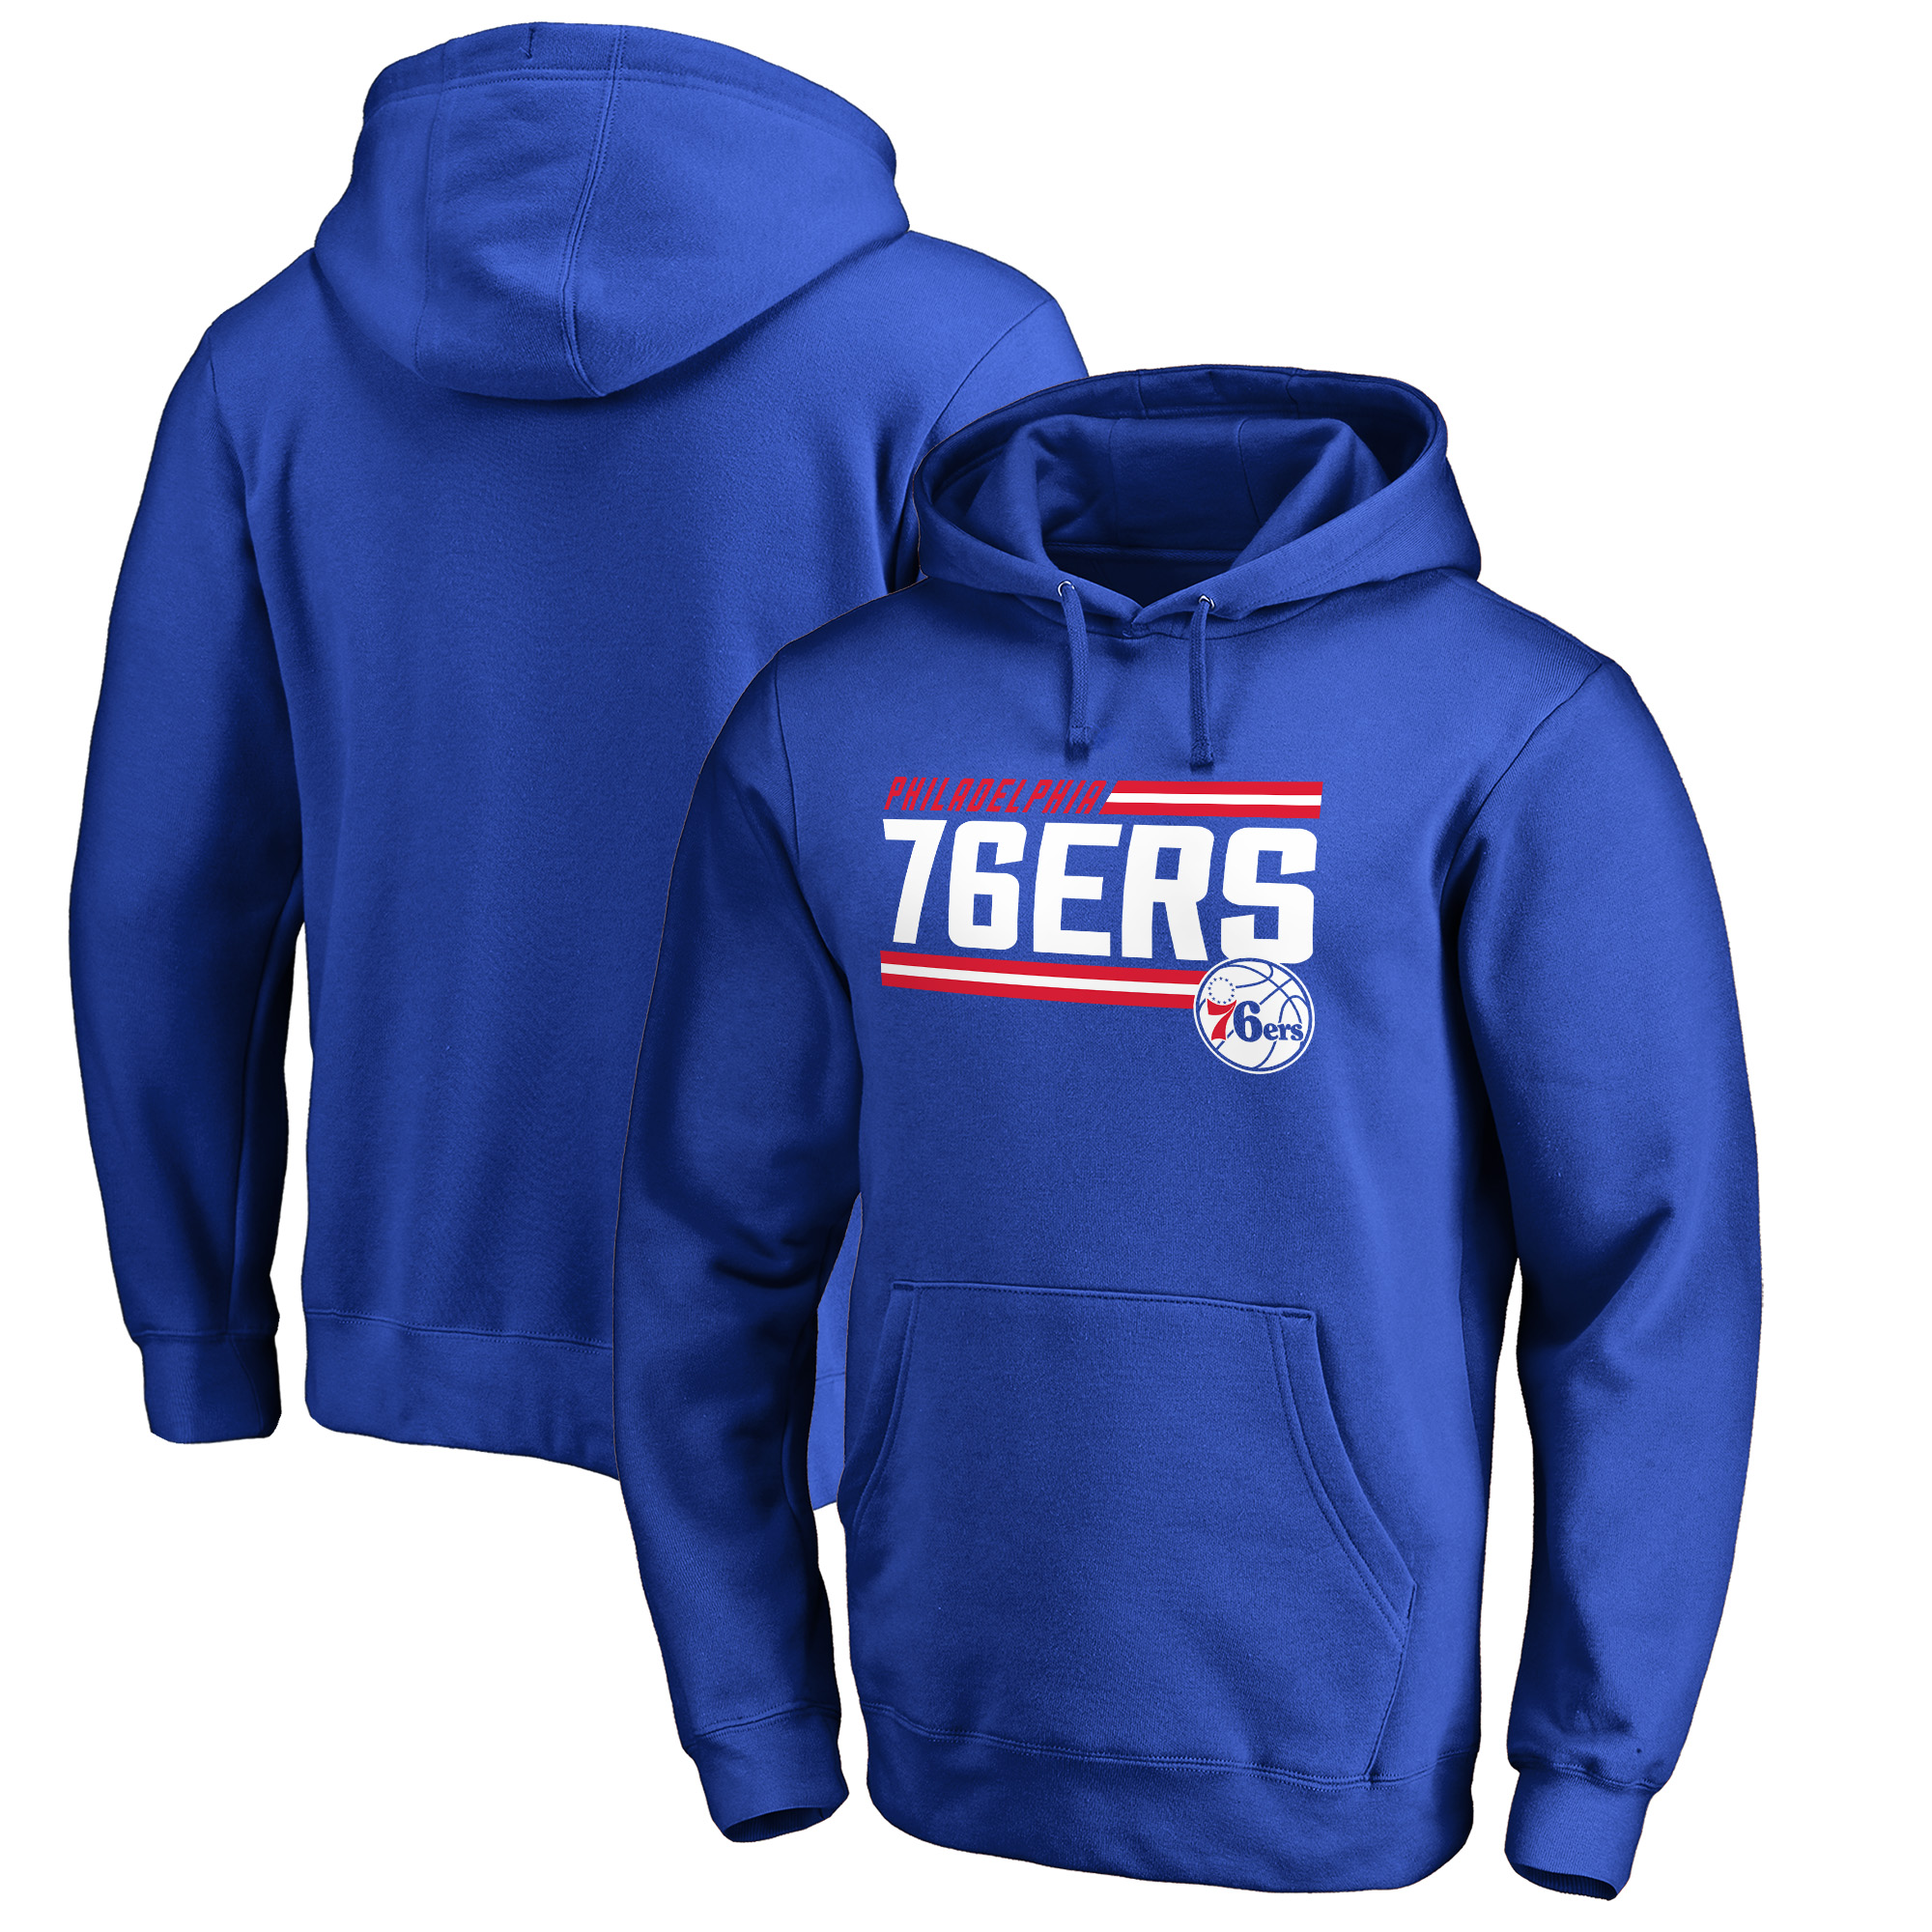 Philadelphia 76ers Fanatics Branded Onside Stripe Pullover Hoodie - Royal